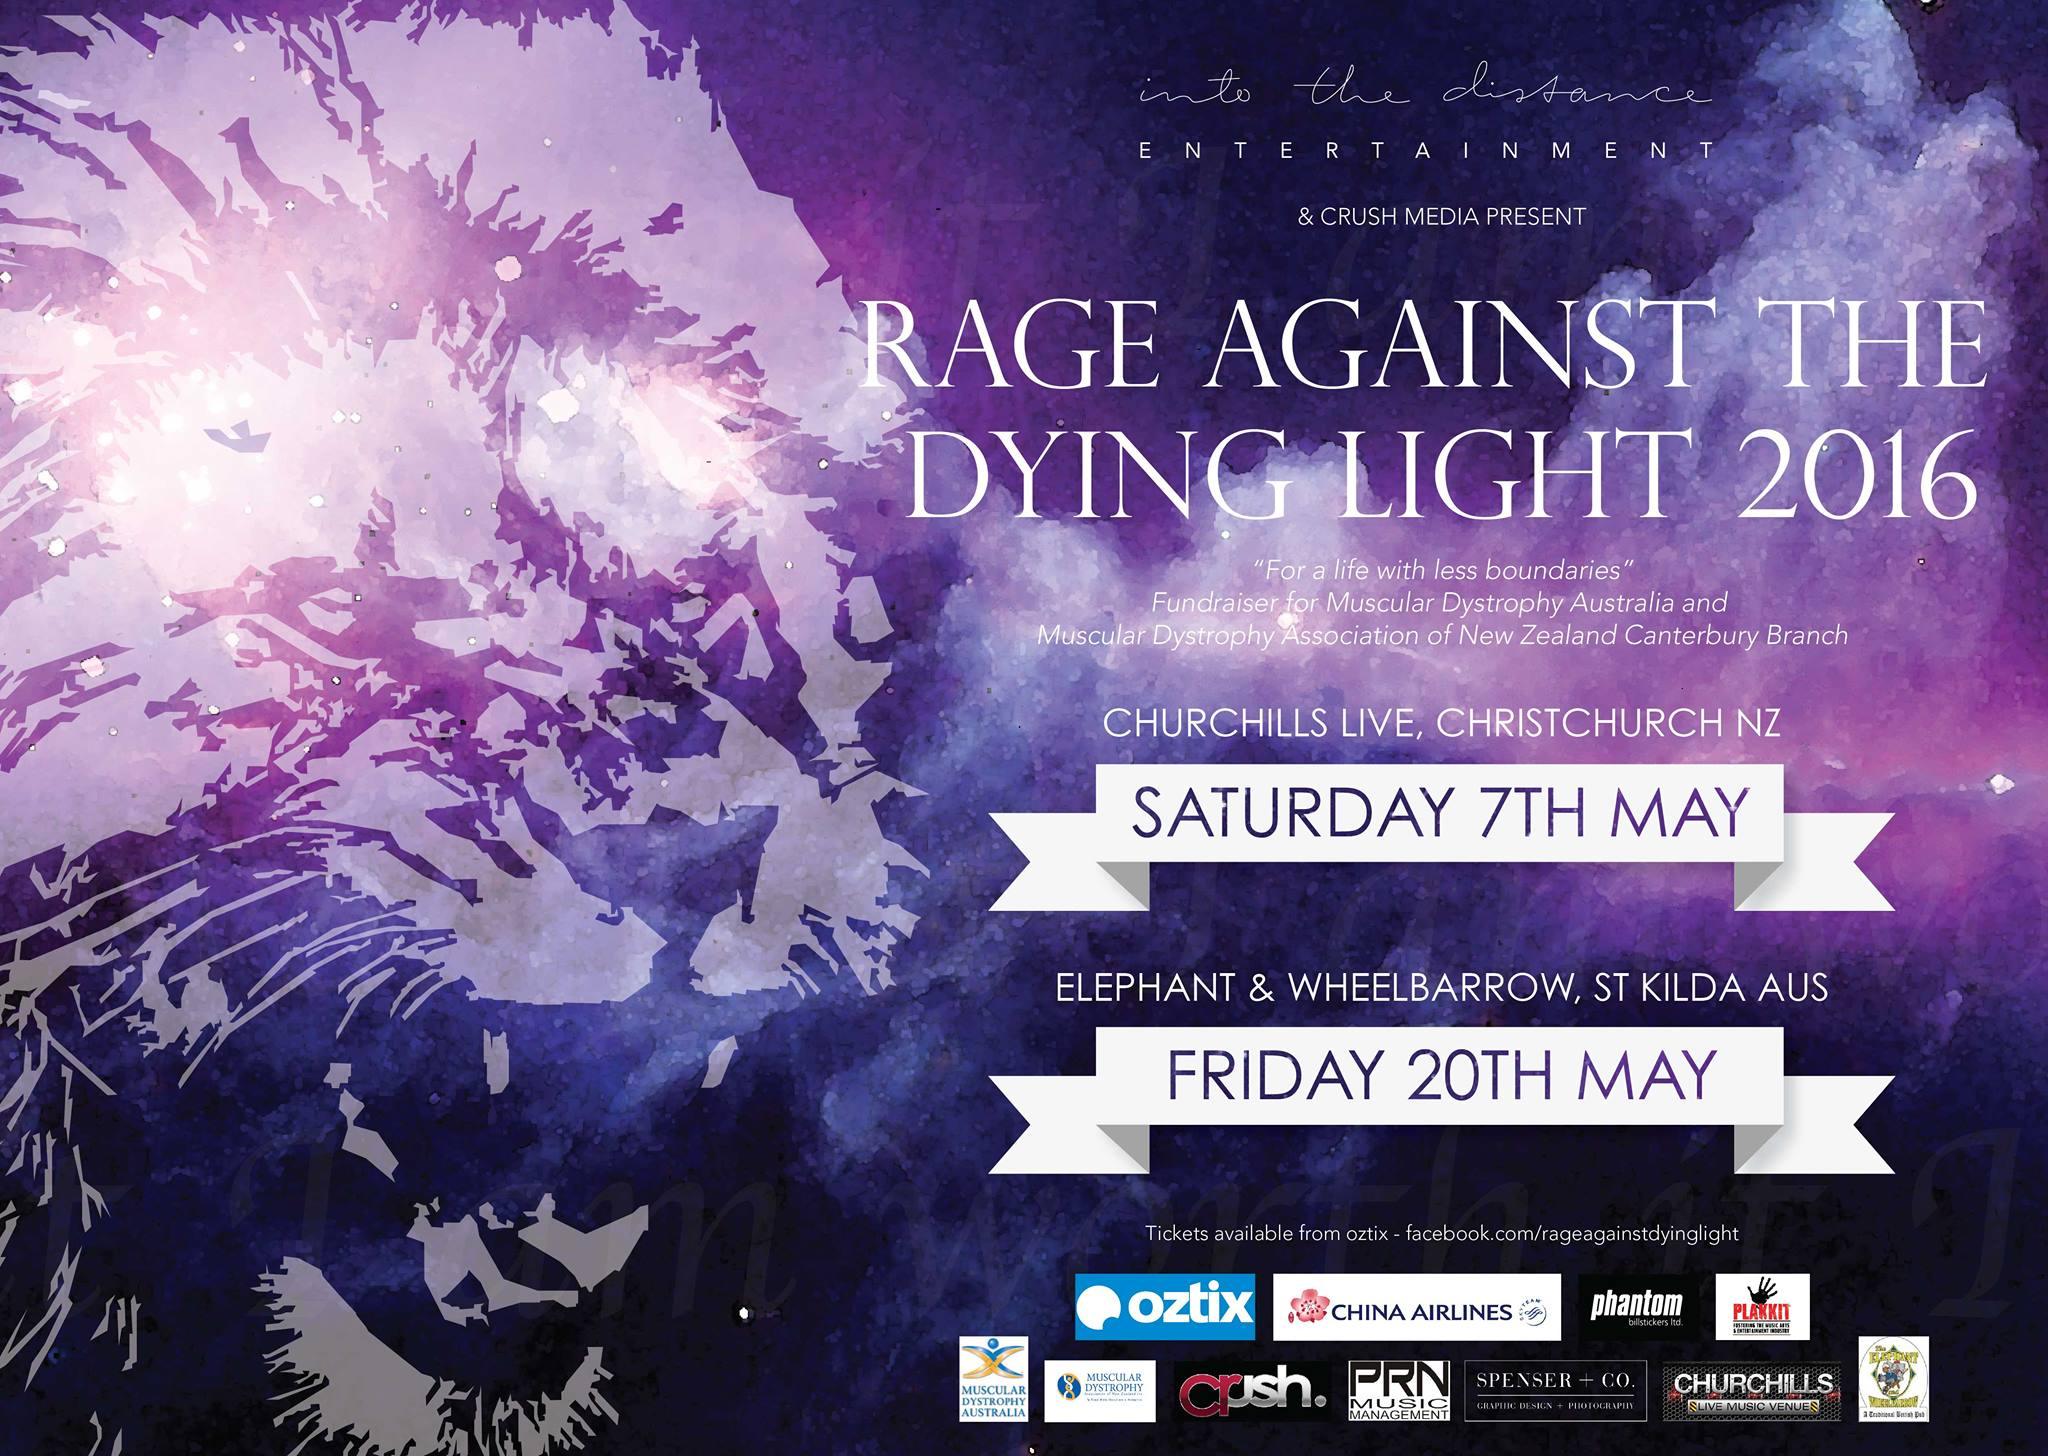 TEN THOUSAND TO HEADLINE THE INAUGURAL 'RAGE AGAINST THE DYING LIGHT' MELBOURNE SHOW